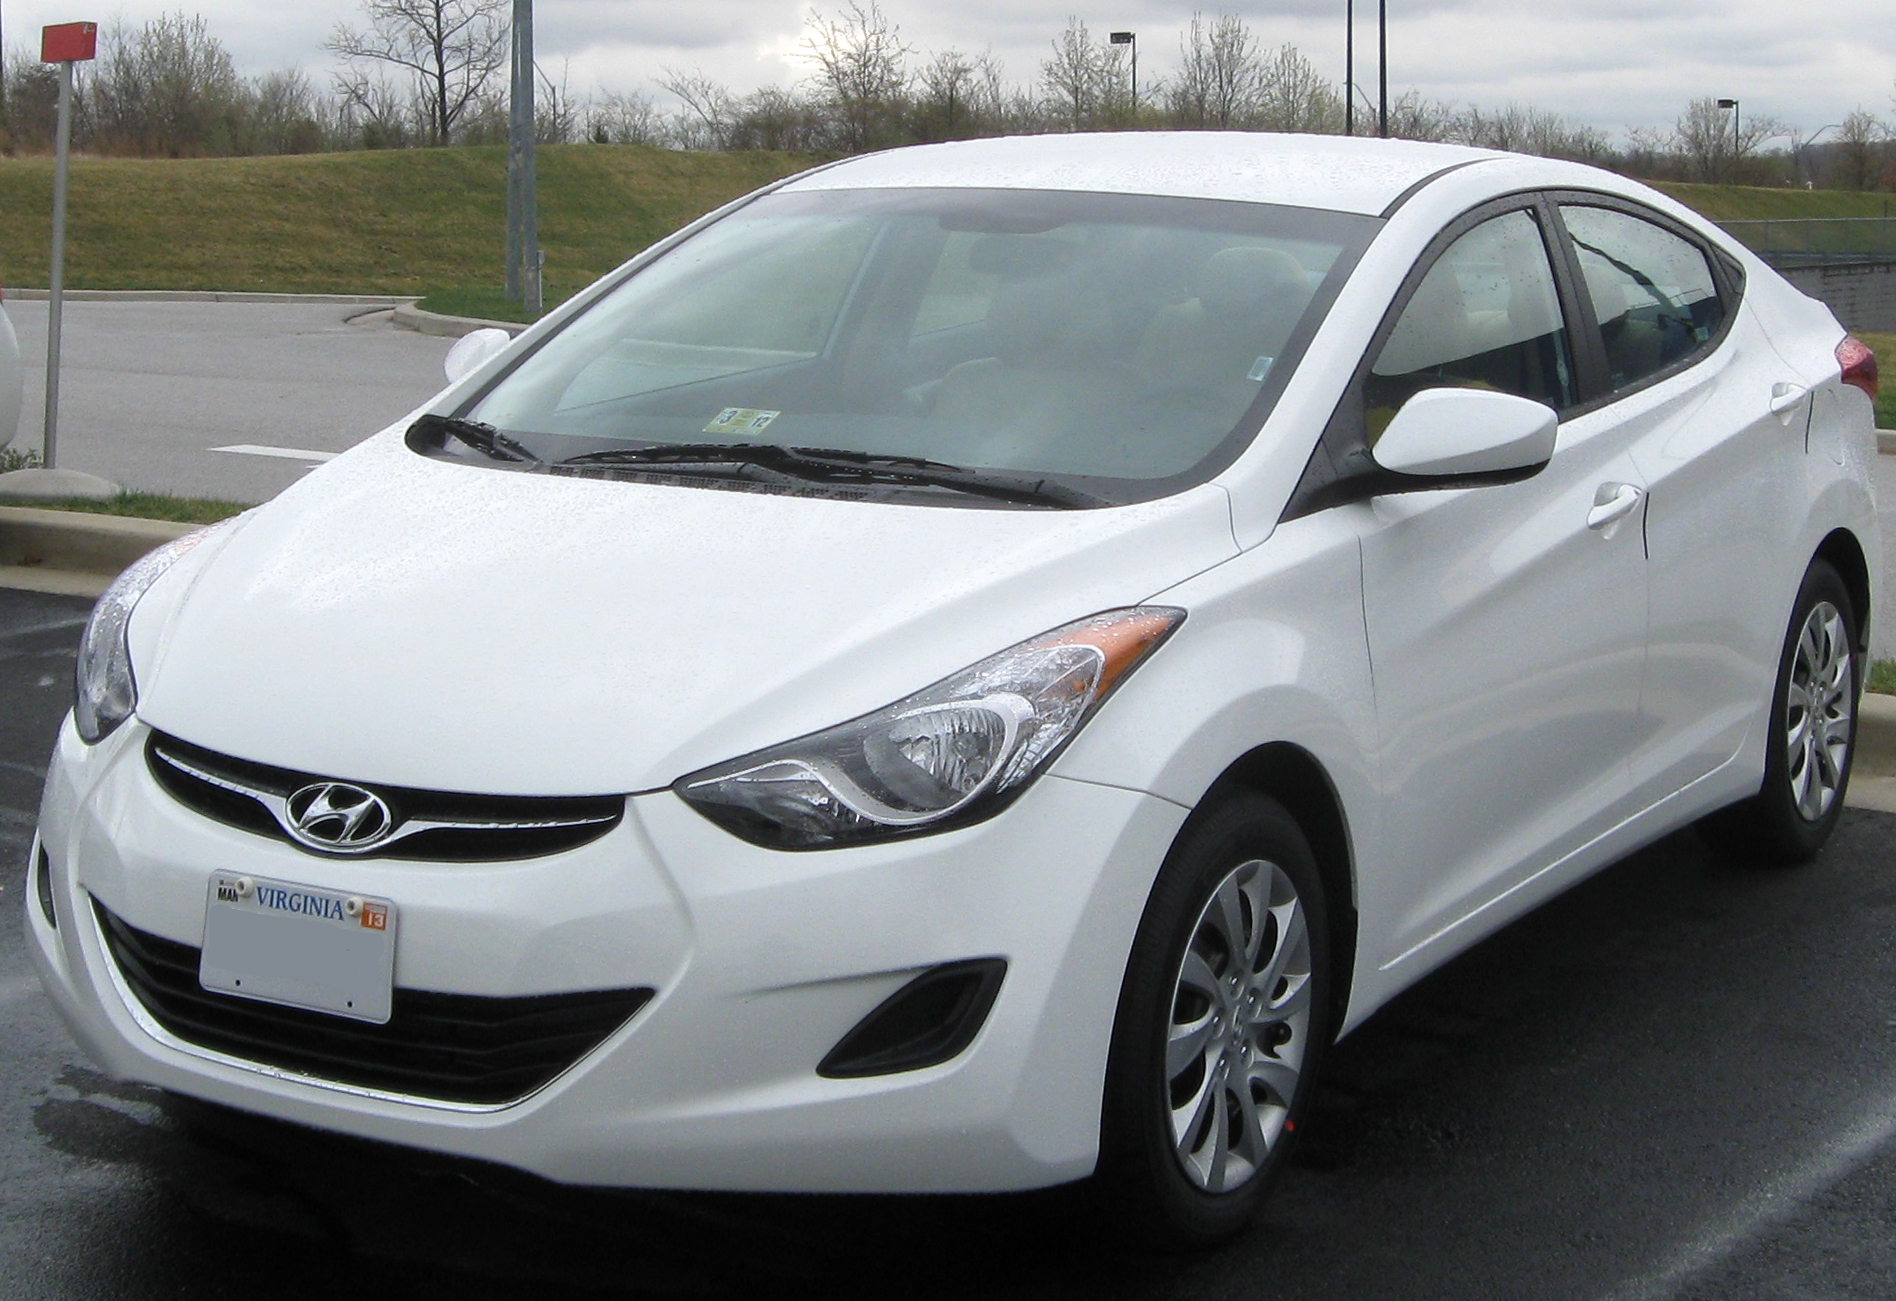 Hyundai Elantra Trim Levels Autos Post